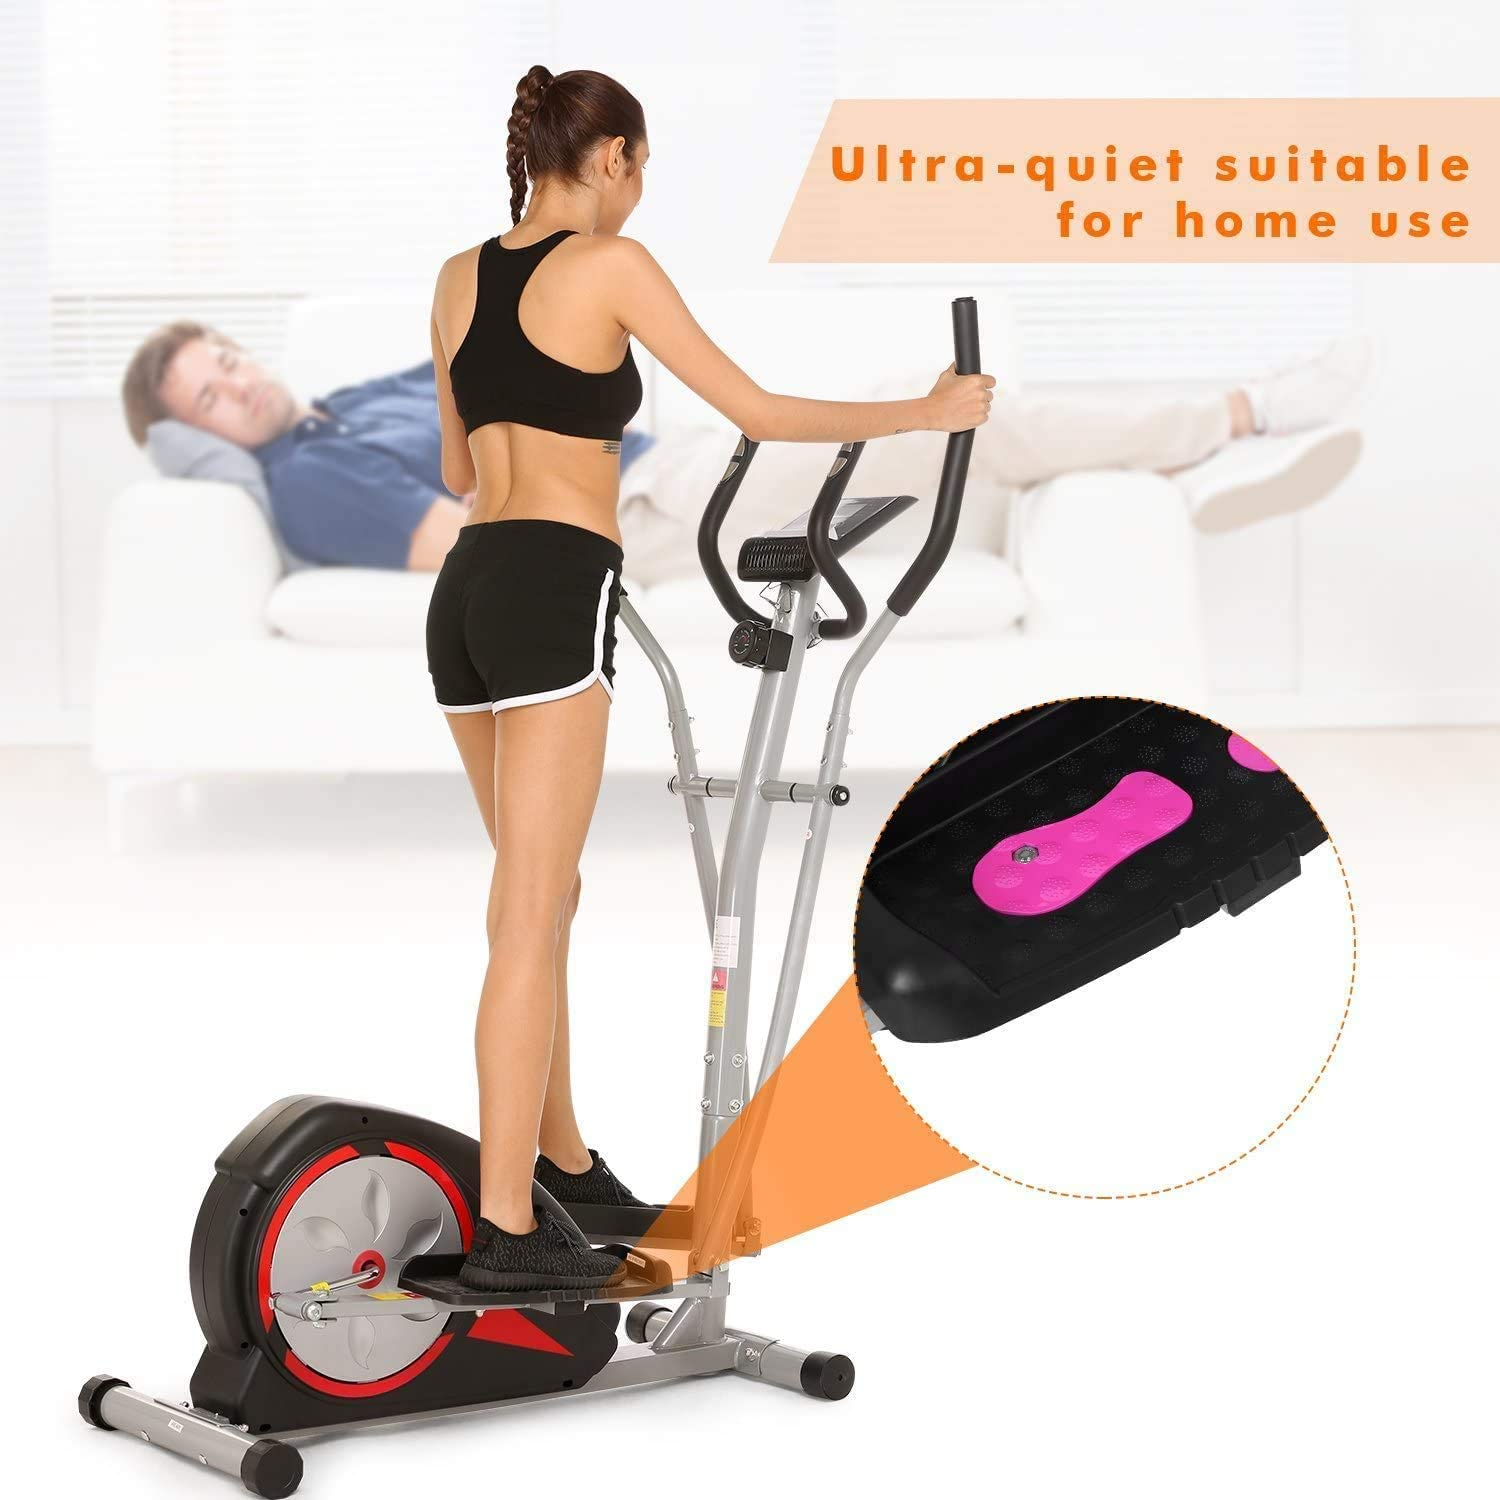 Elliptical Machine Magnetic Elliptical Training Machines with LCD Monitor Smooth Quiet Driven Pulse Rate Grips Elliptical Exercise Machine for Home Gym Office Workout